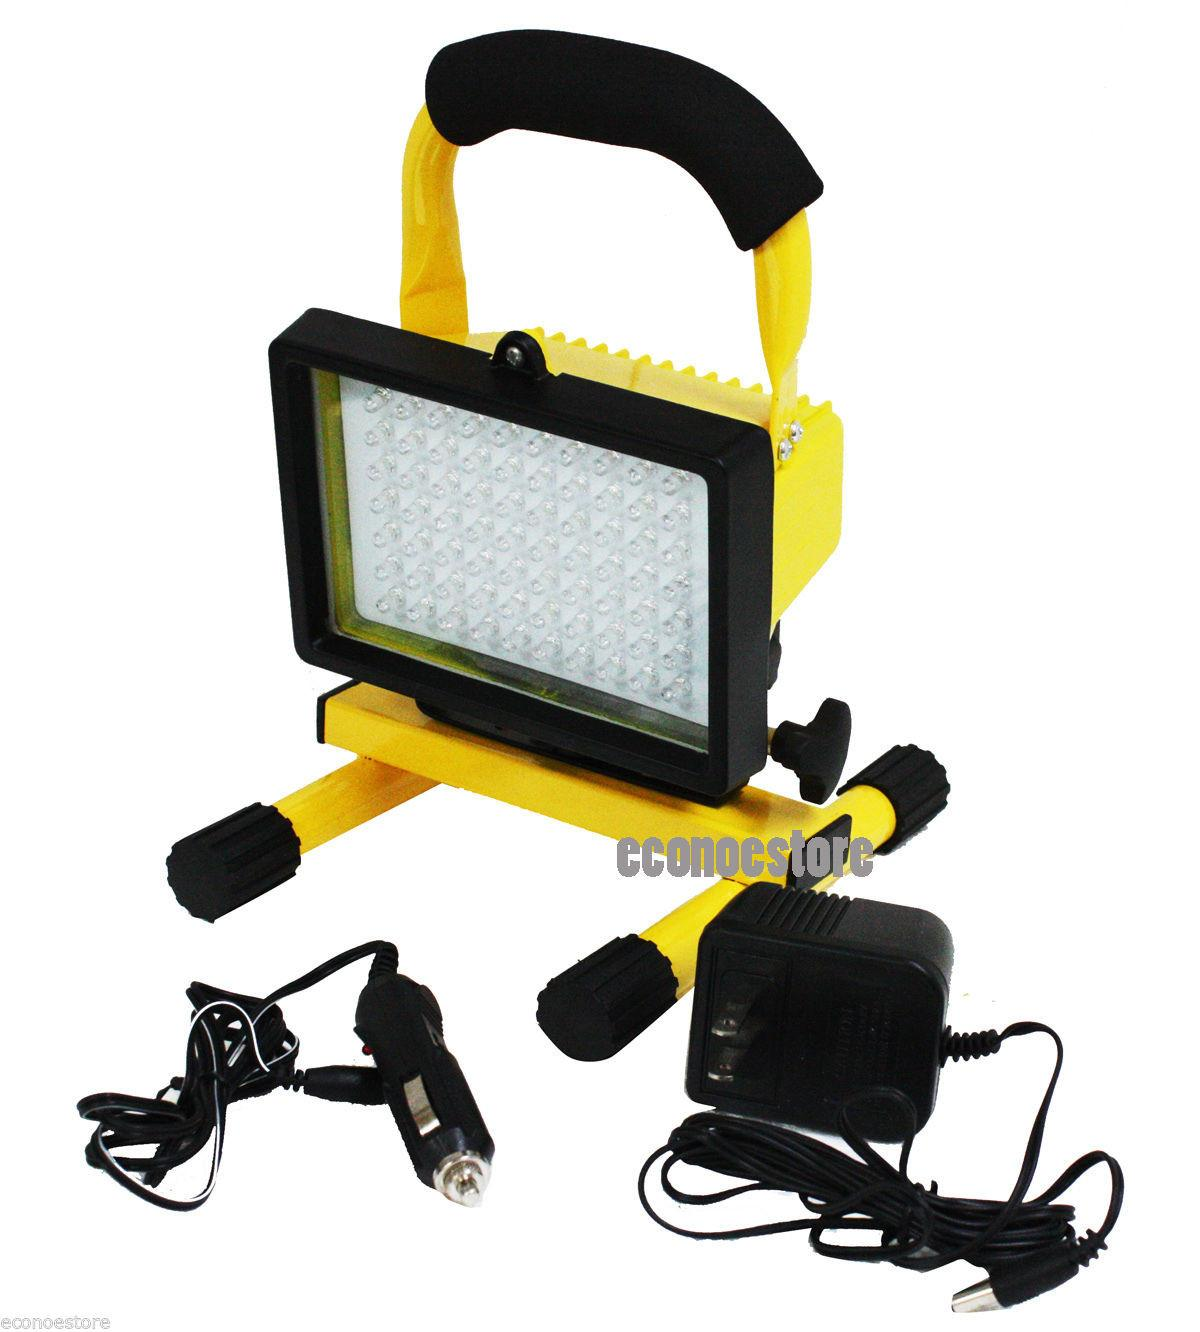 Super Bright Led Rechargeable Cordless Worklight